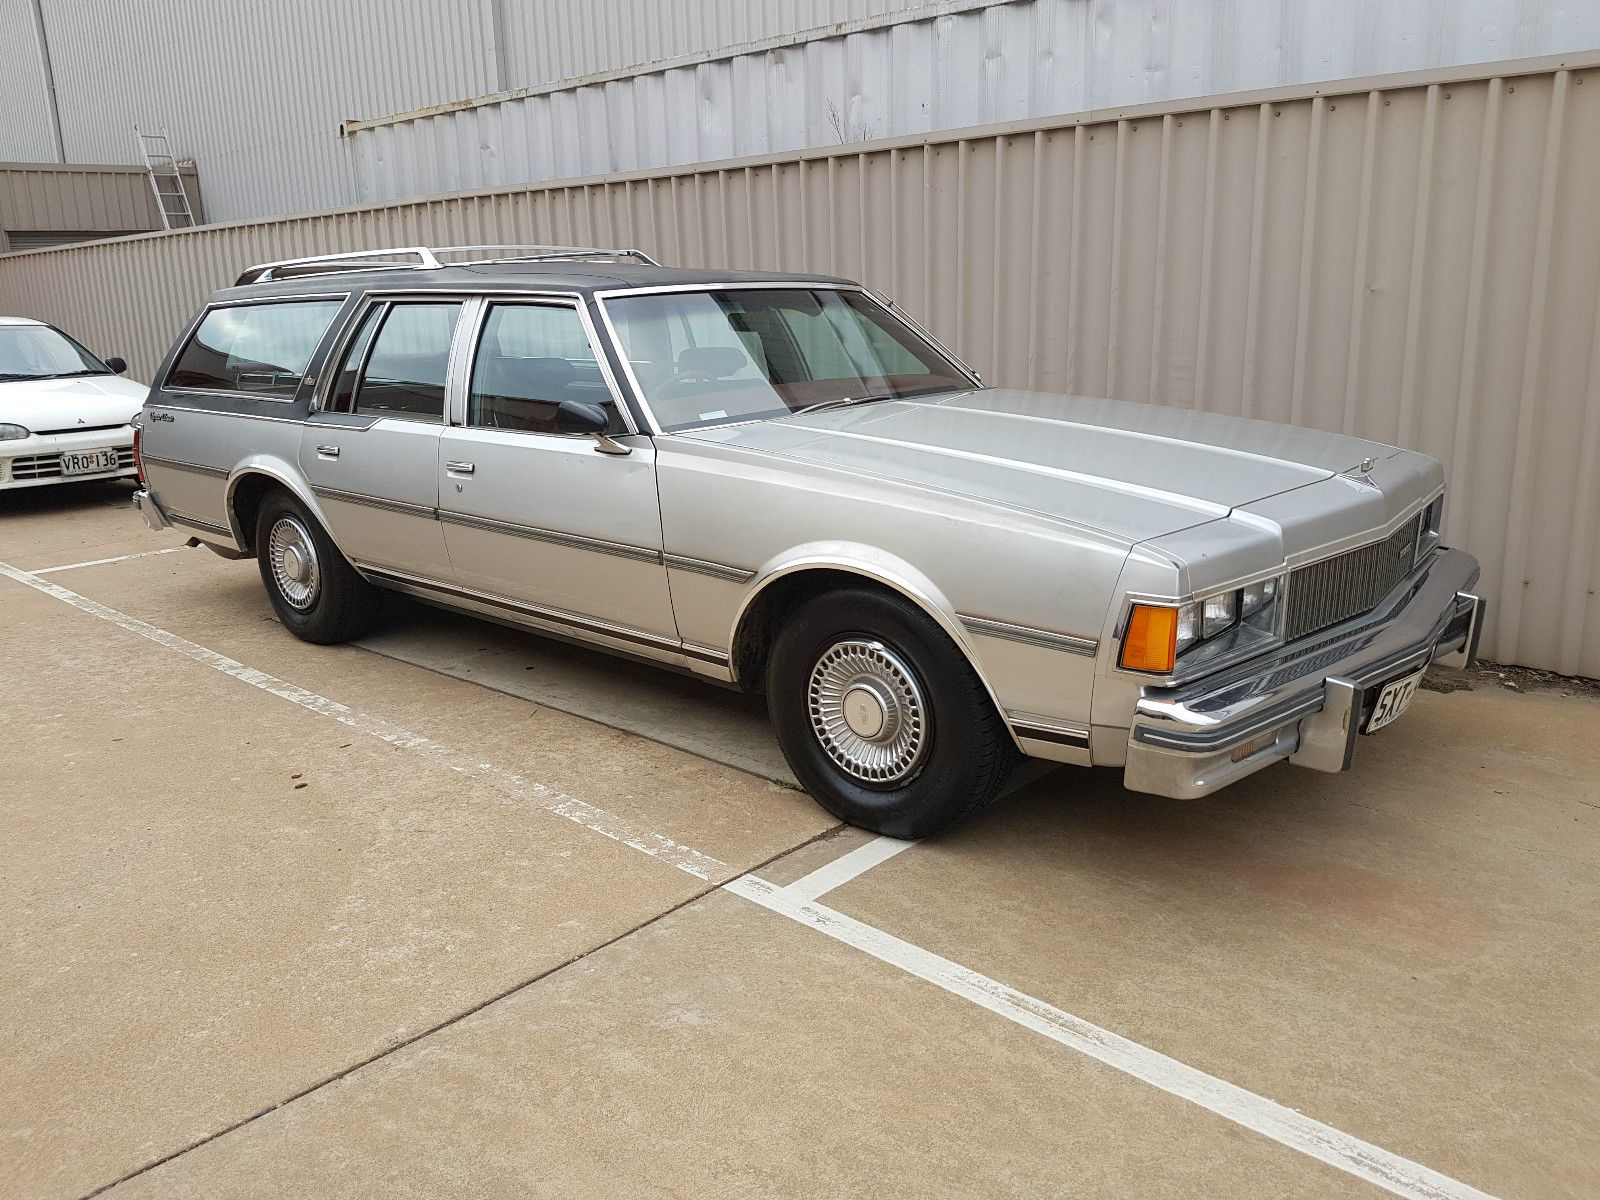 Chevrolet Caprice Station wagon1978 RHD in Australia from new as a